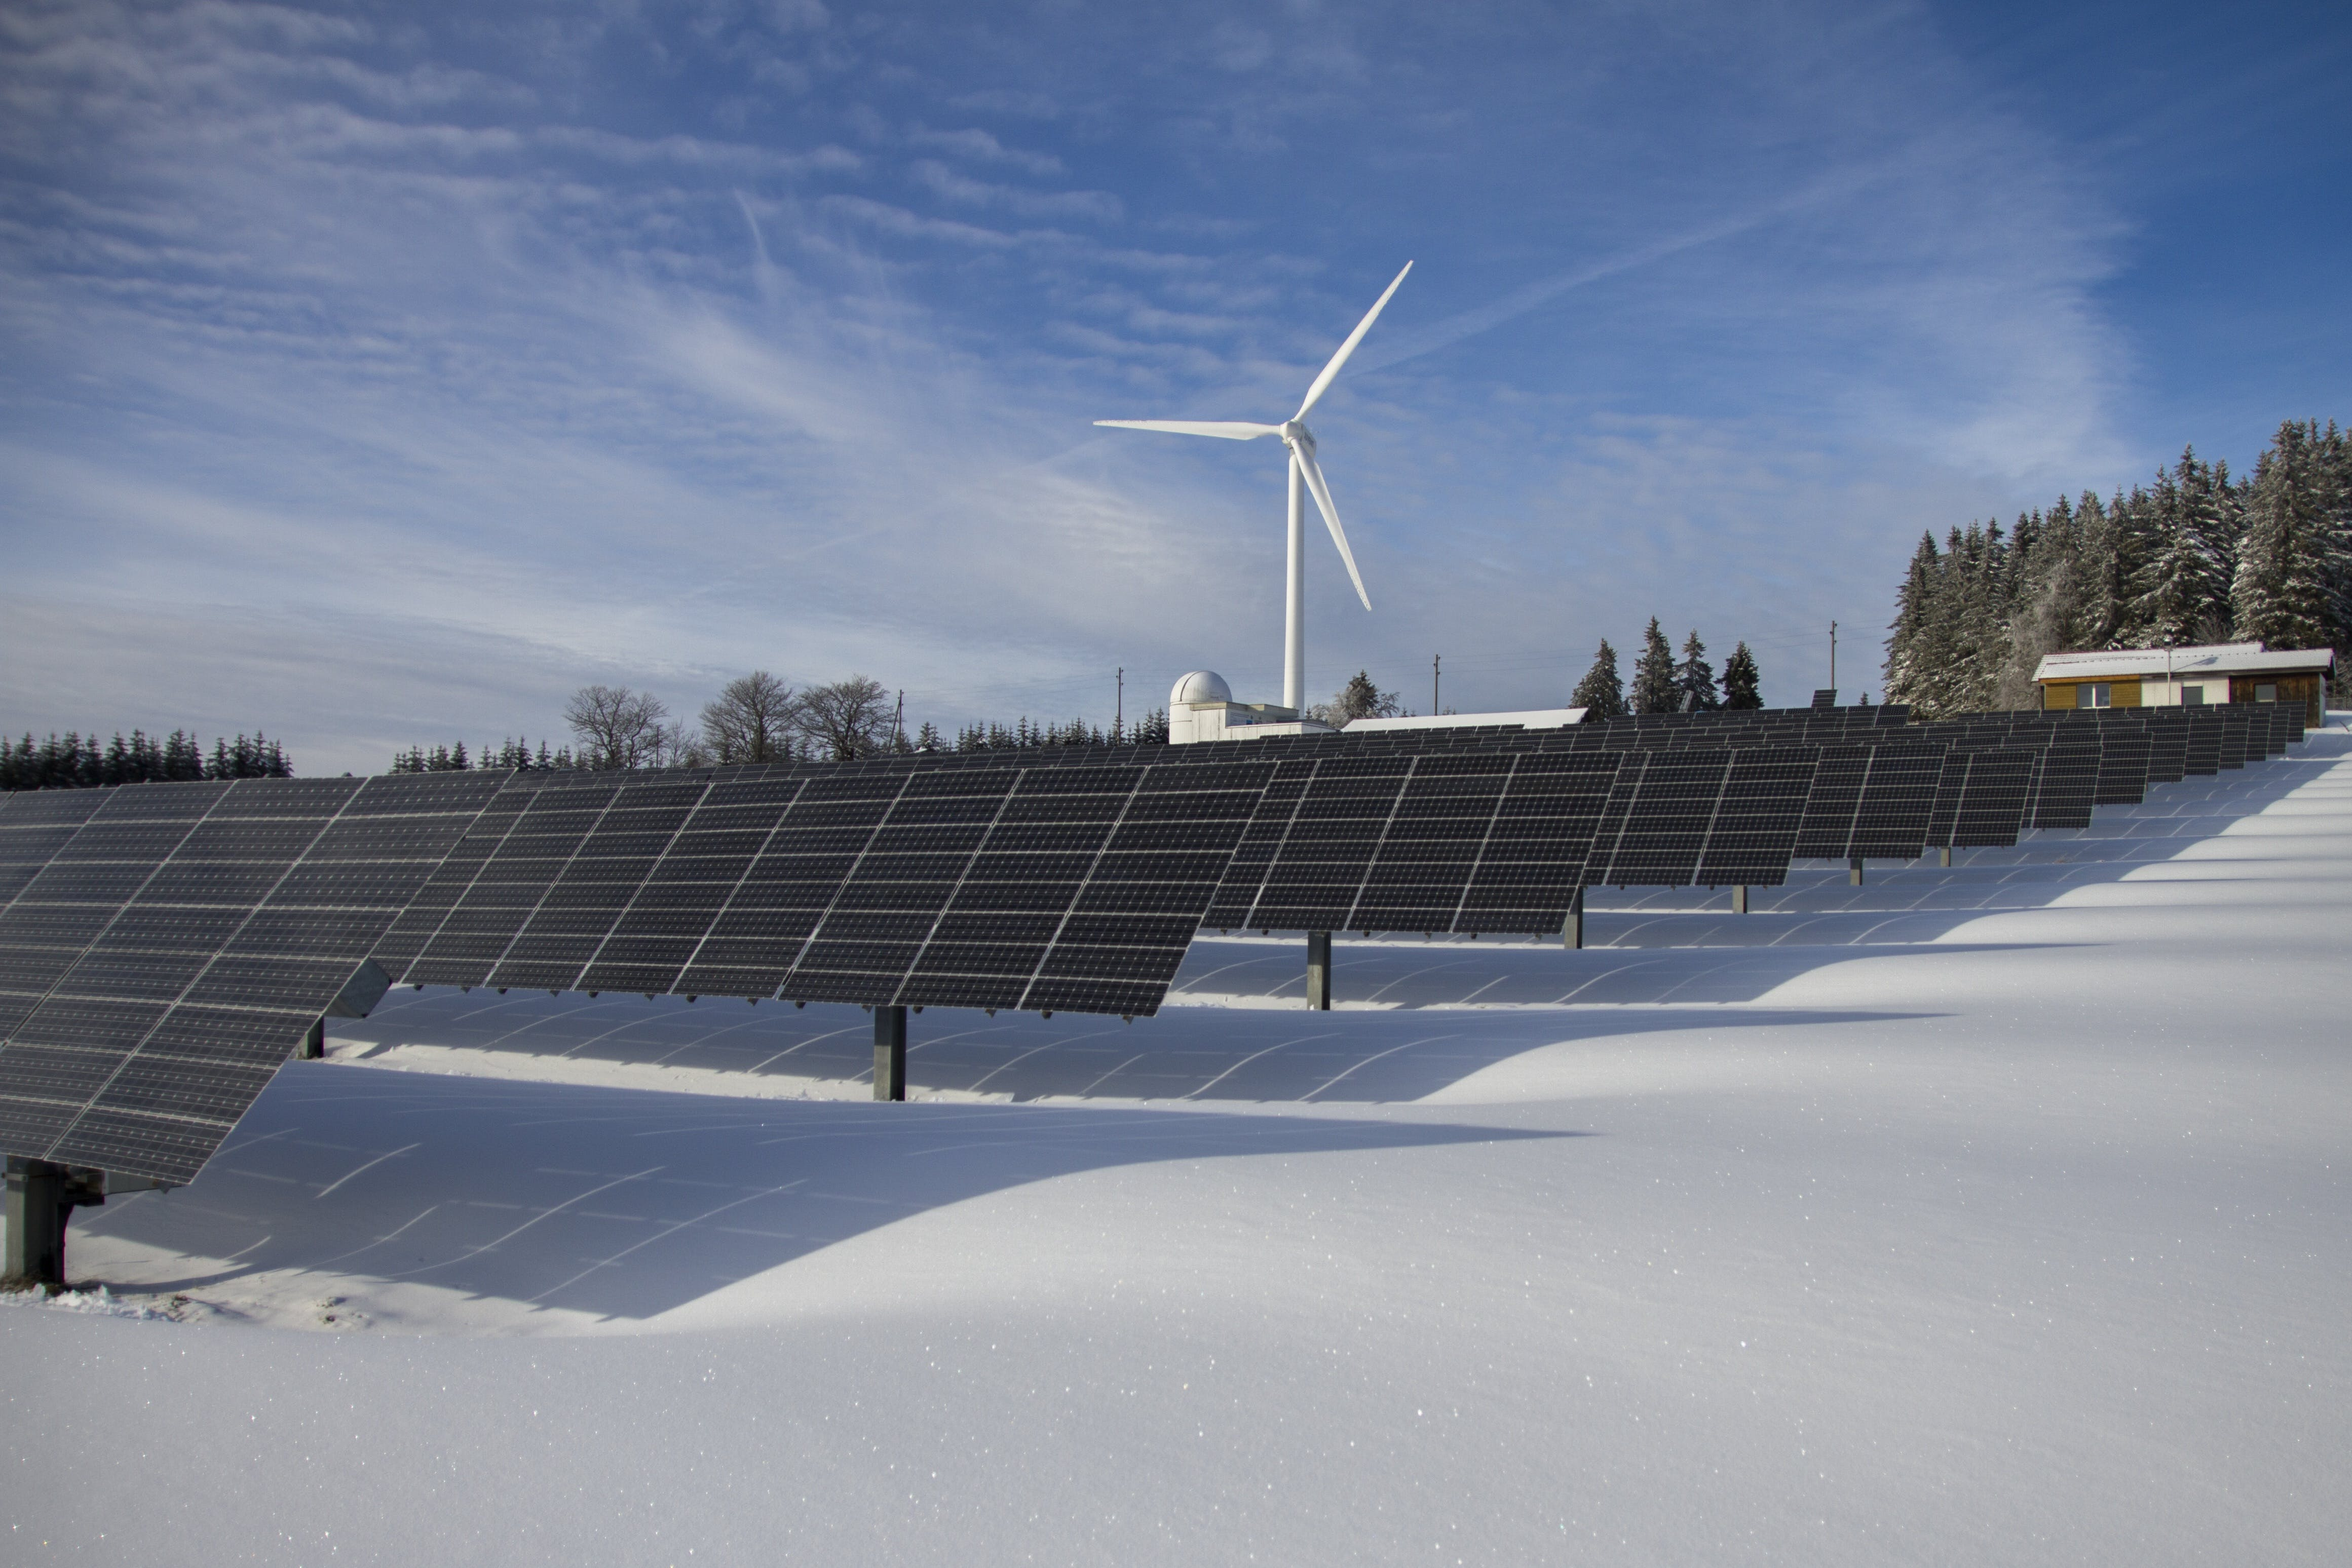 Solar Panels on Snow With Windmill Under Clear Day Sky